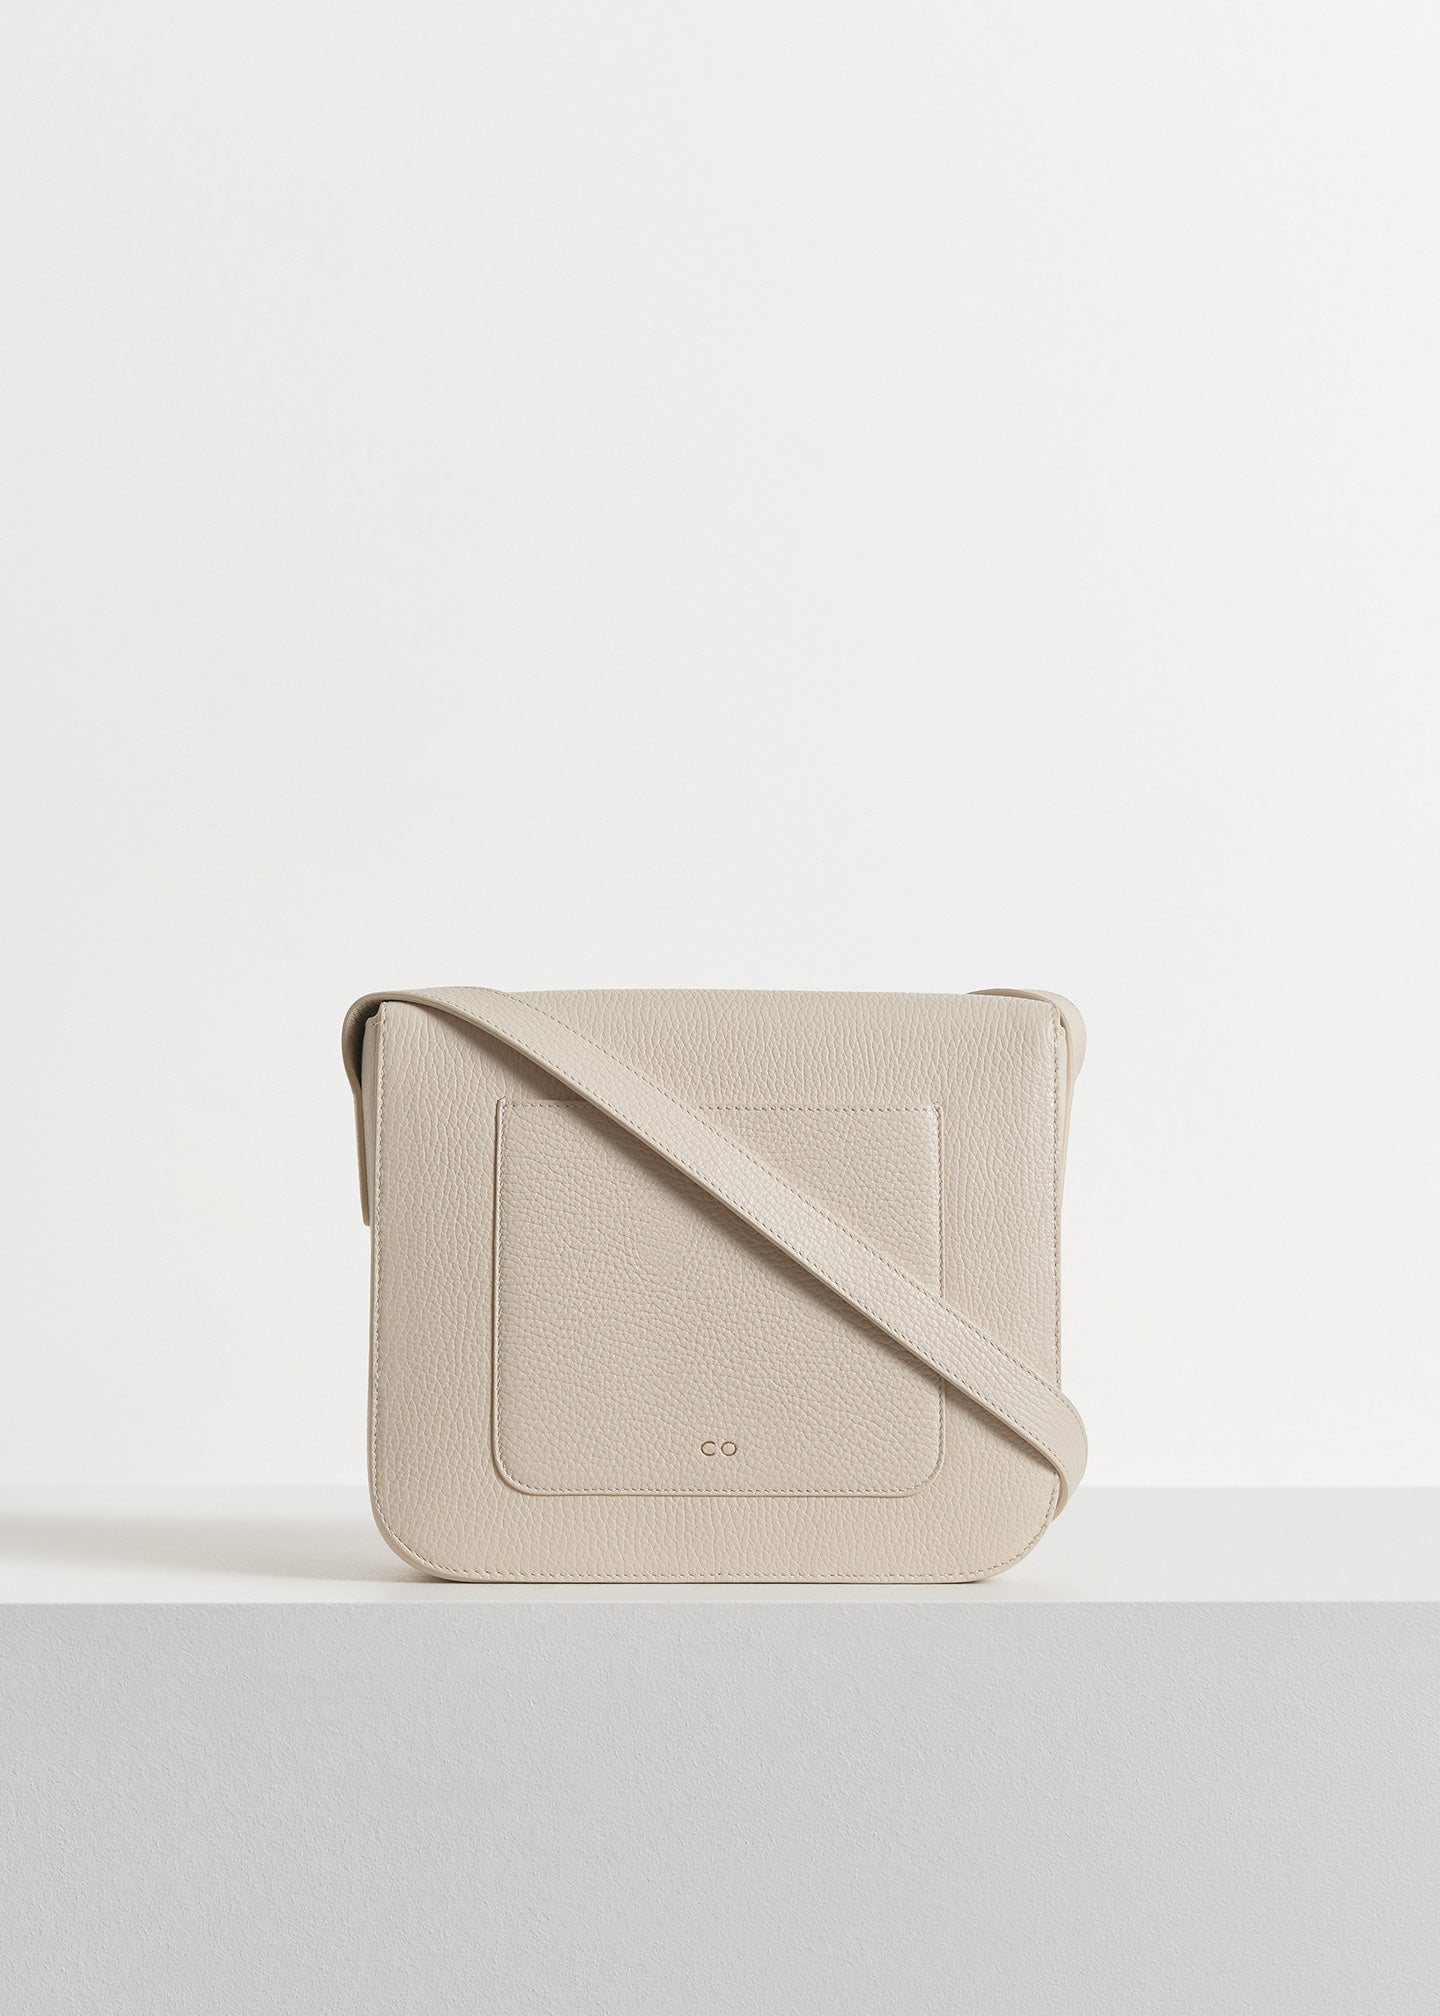 Box Bag in Pebbled Leather - Ivory - CO